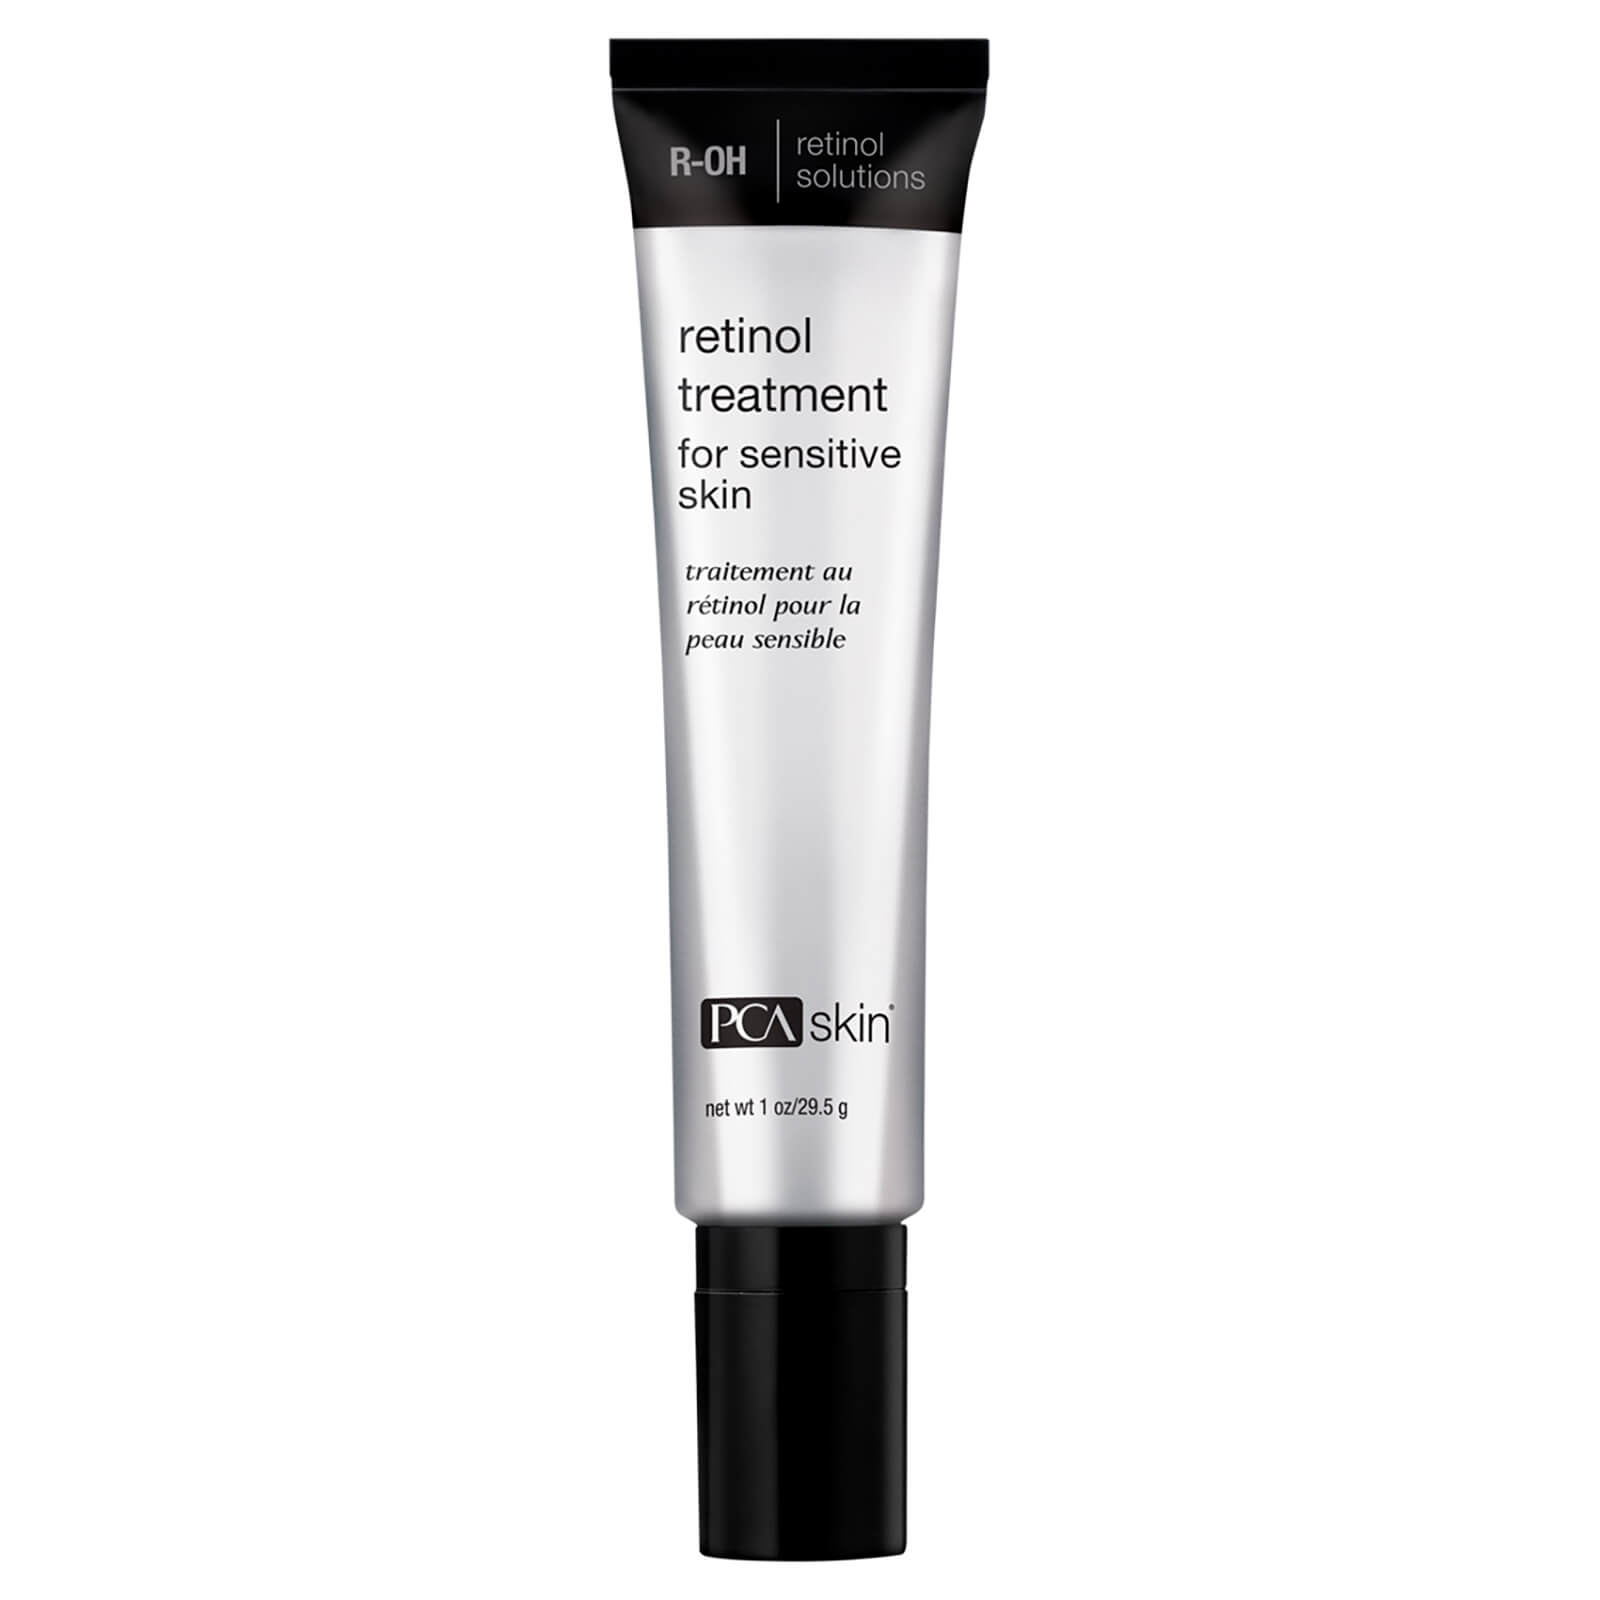 PCA SKIN Retinol Treatment for Sensitive Skin